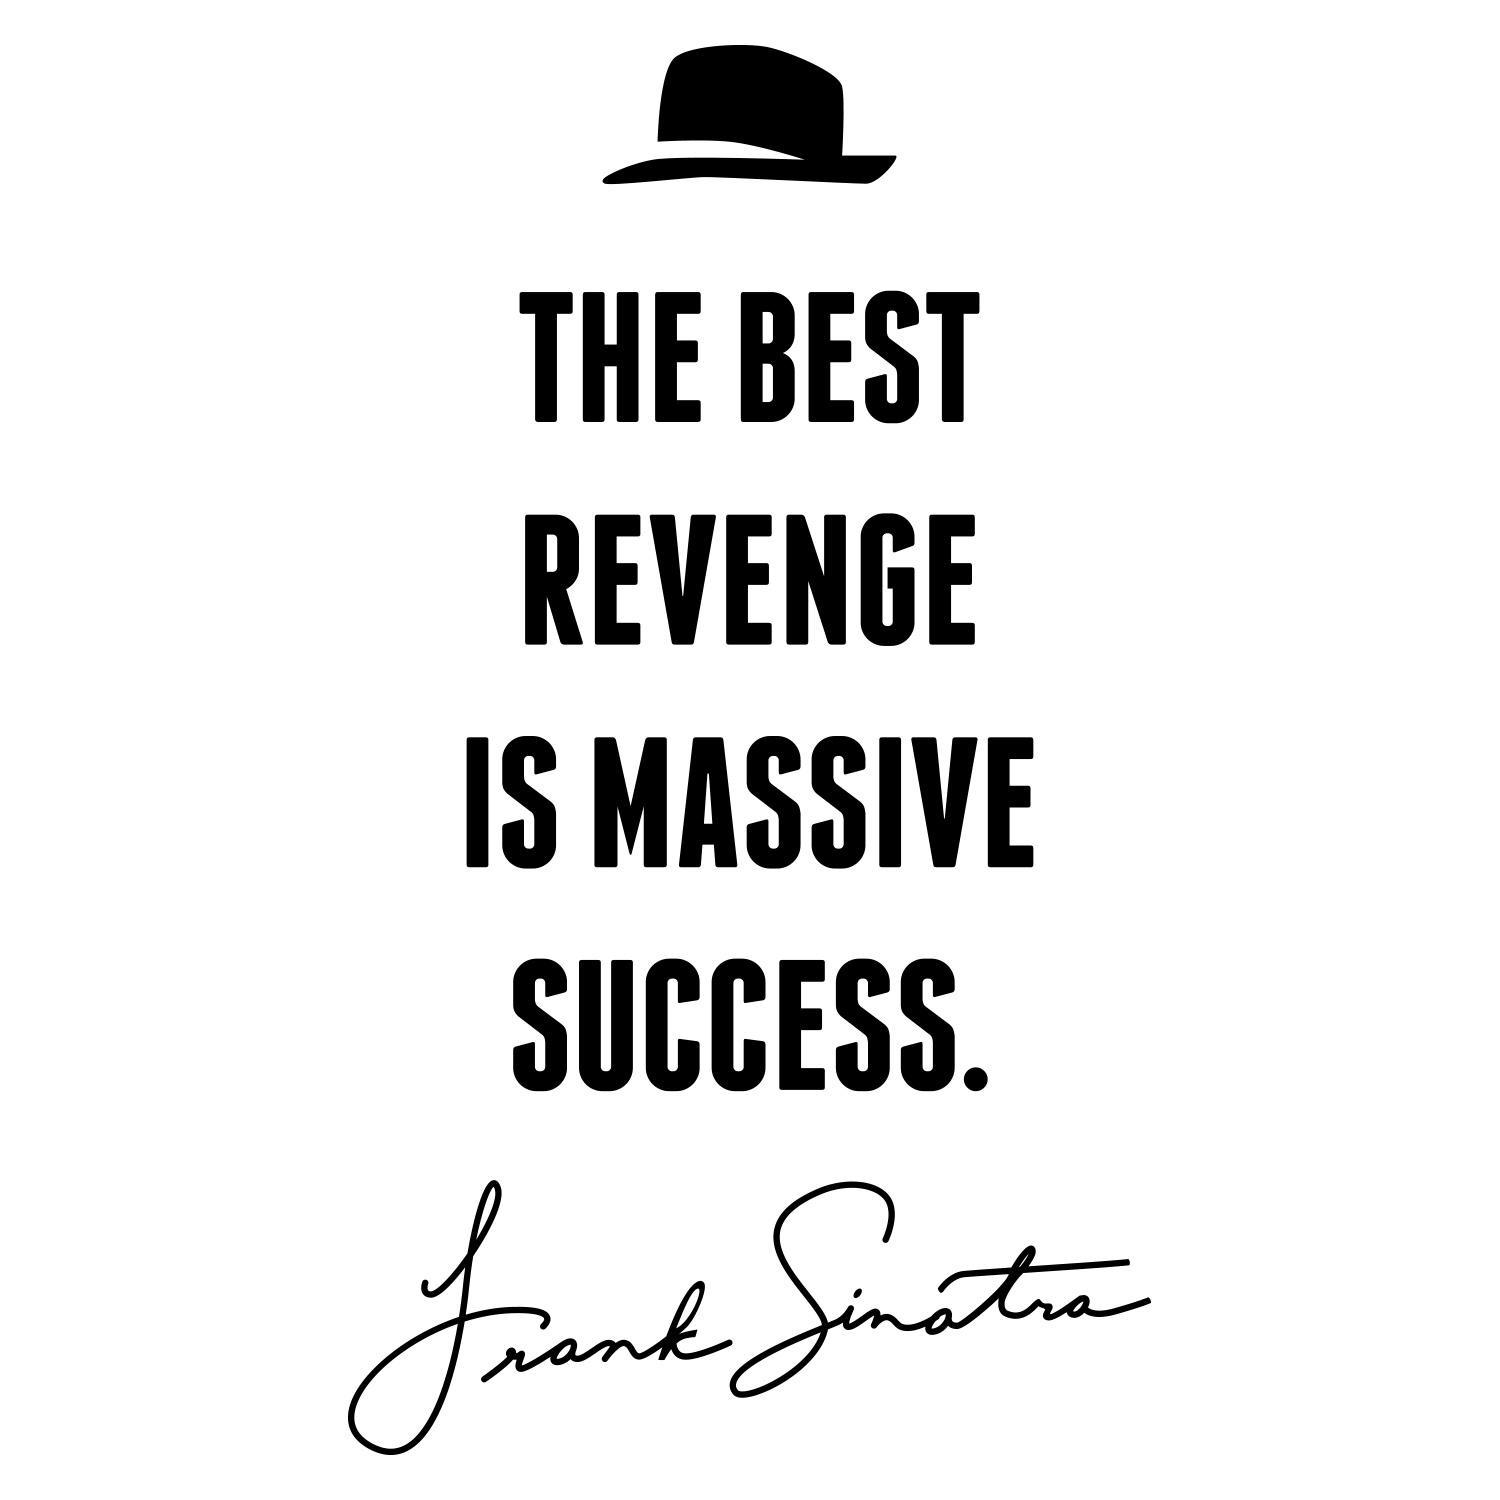 [Image] The best revenge is massive success. -Frank Sinatra